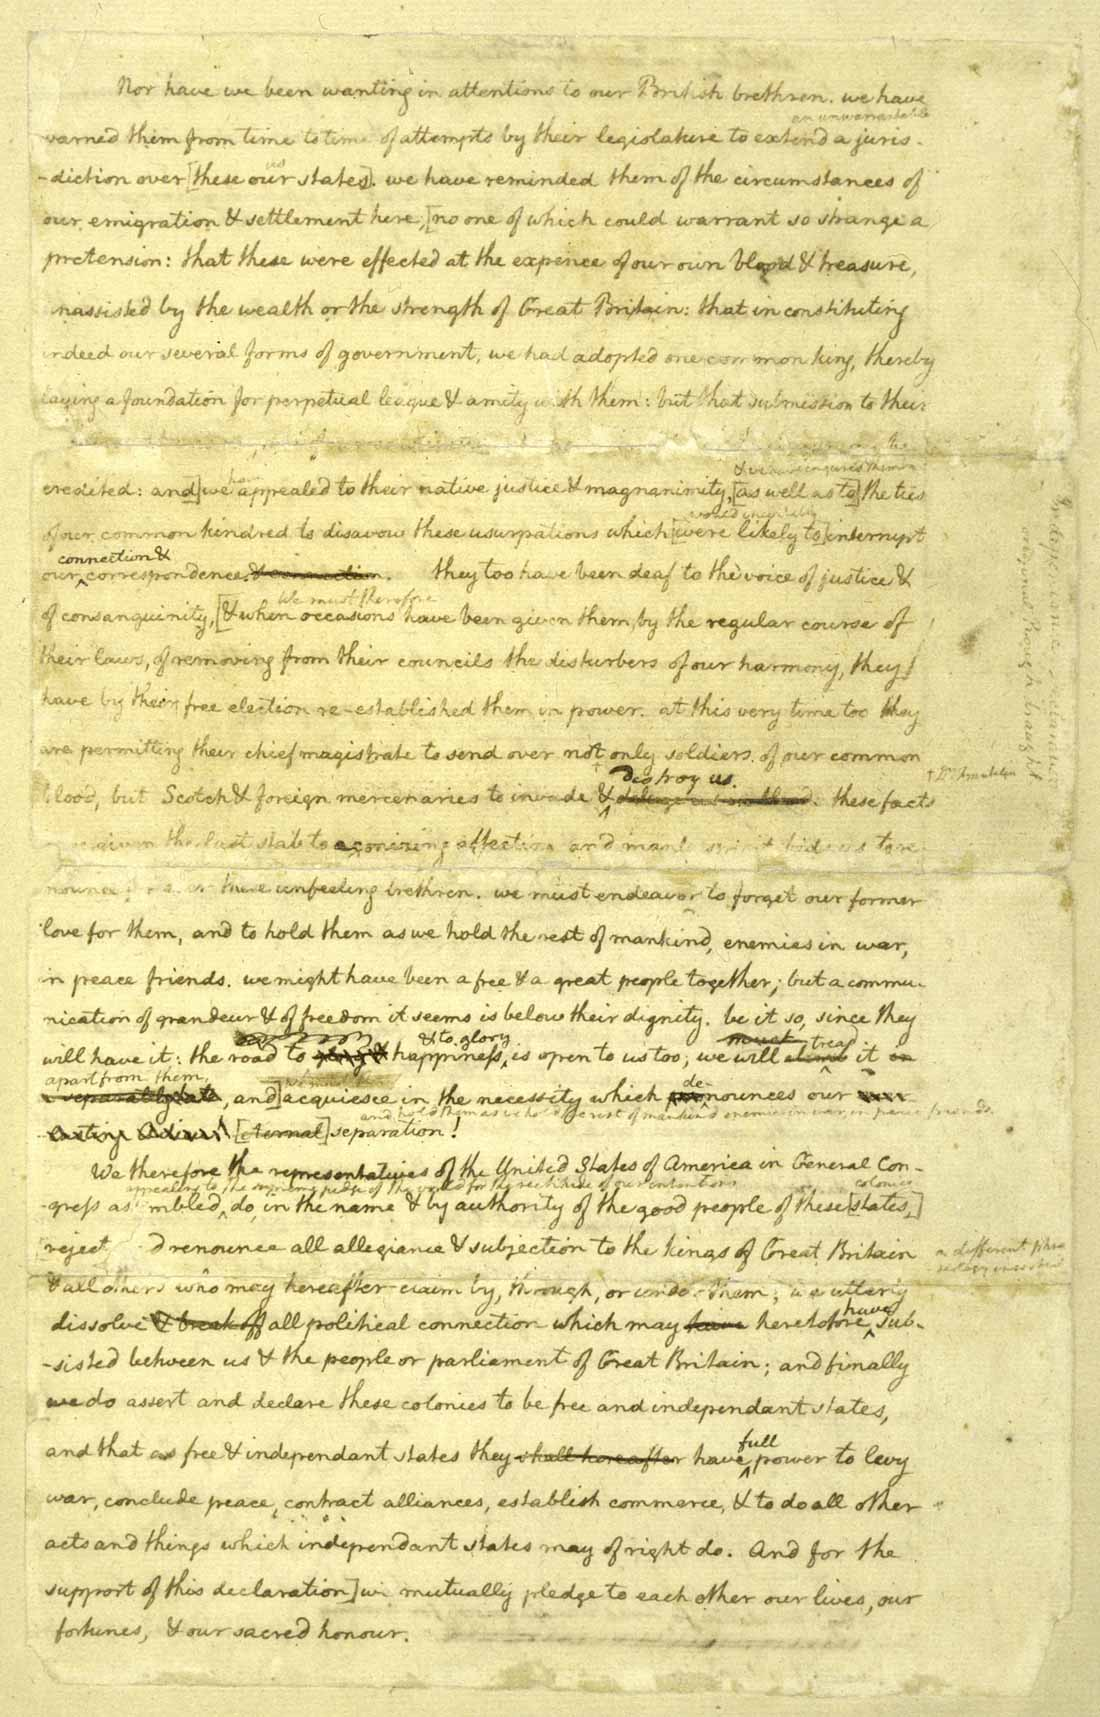 declaration of independence 4th page of manuscript